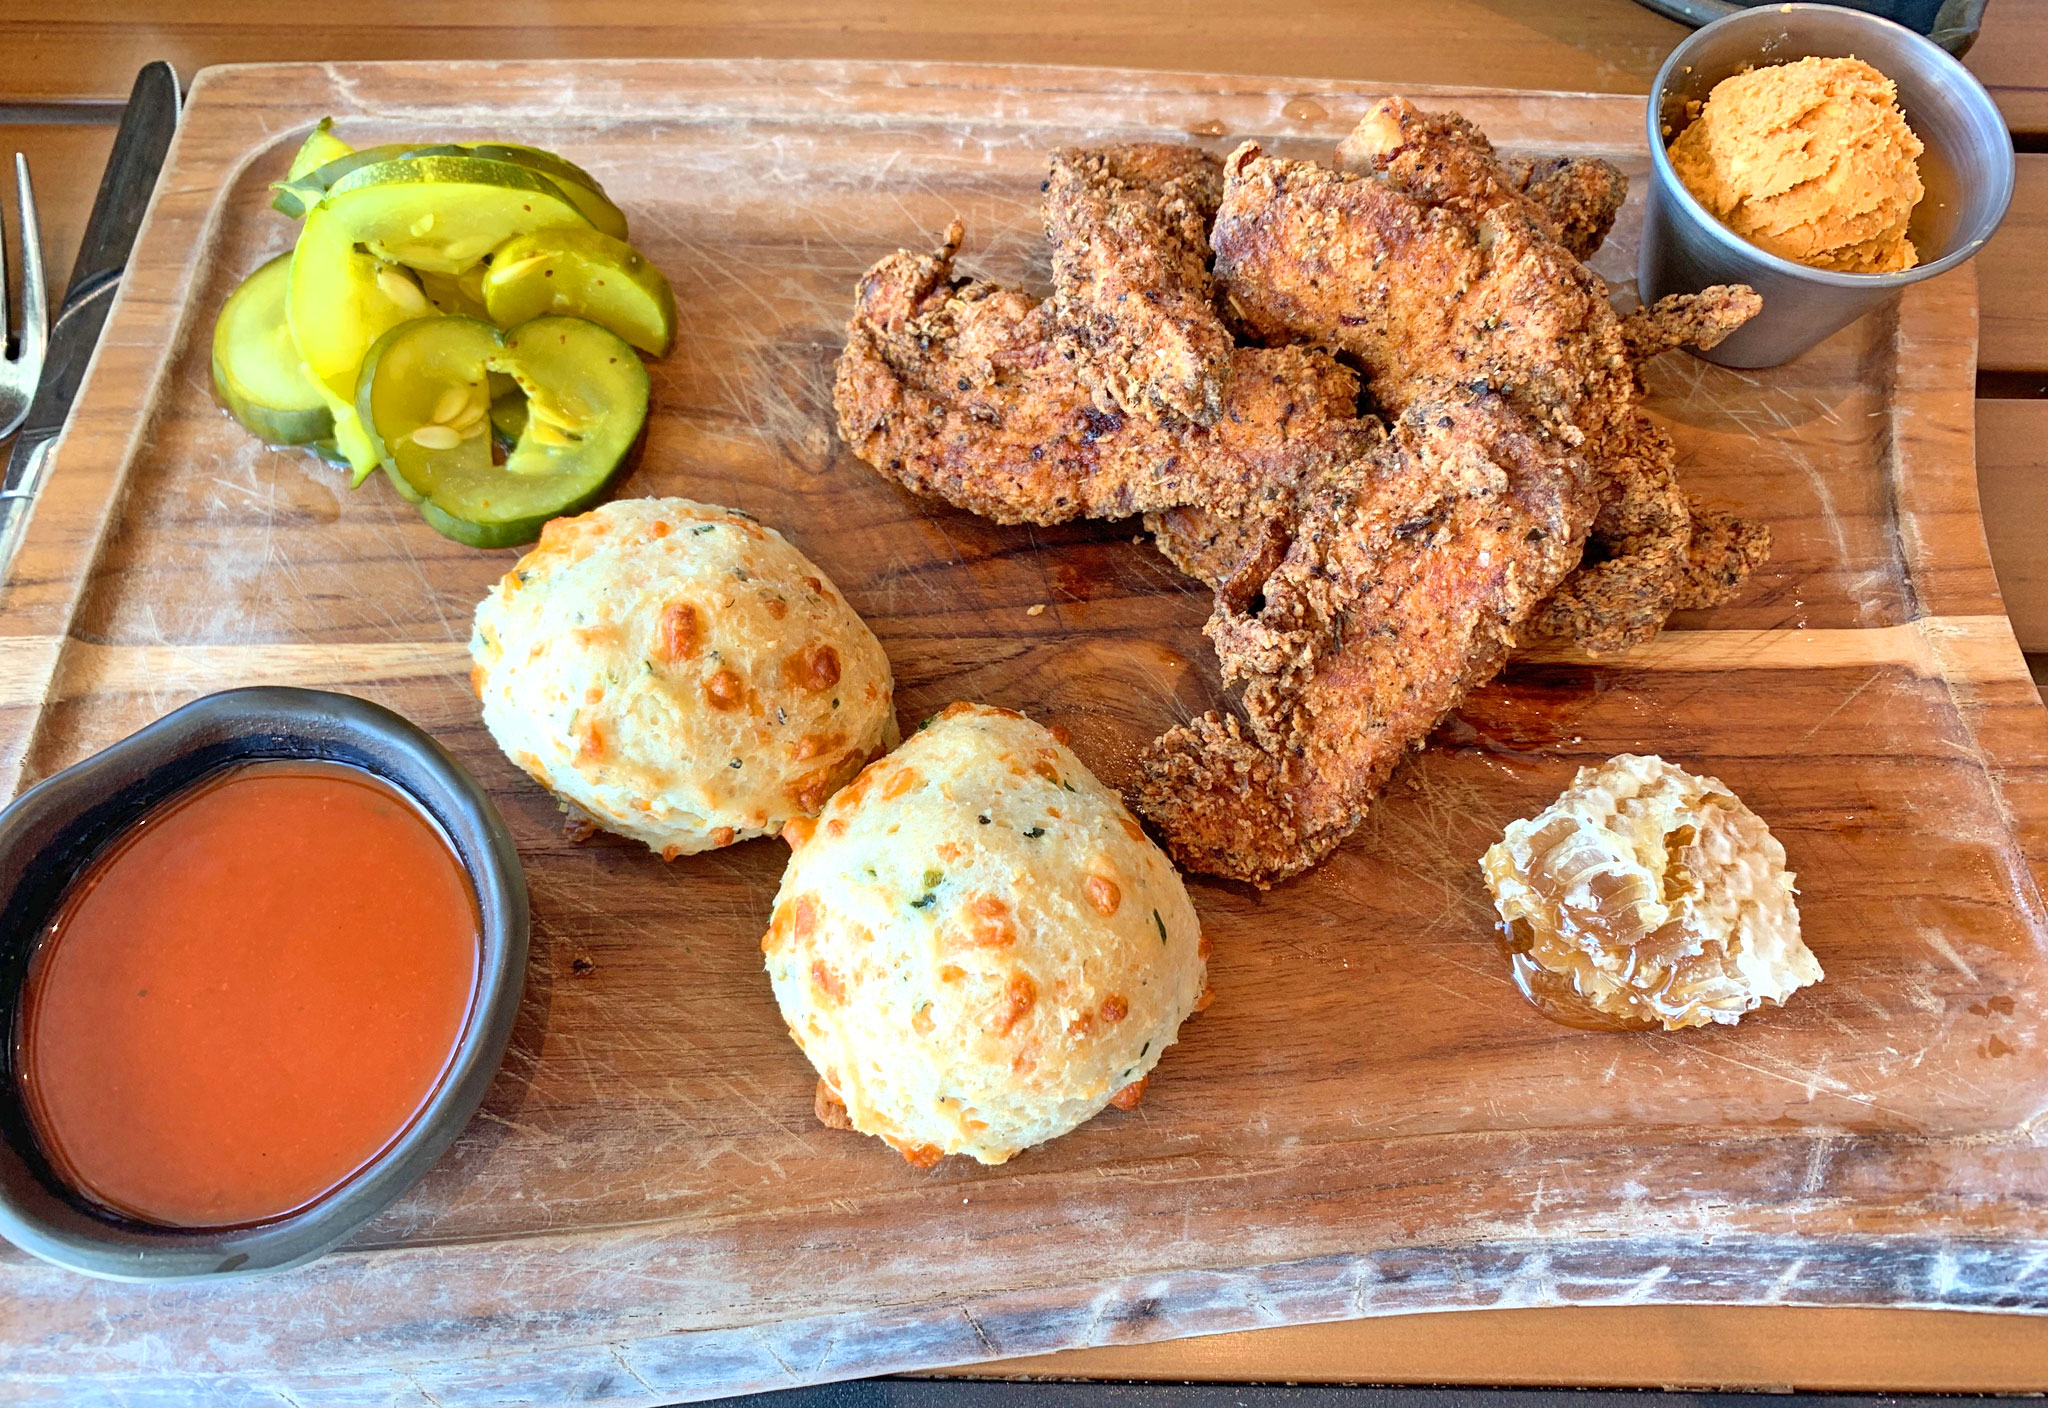 Paul's Fried Chicken & Biscuits